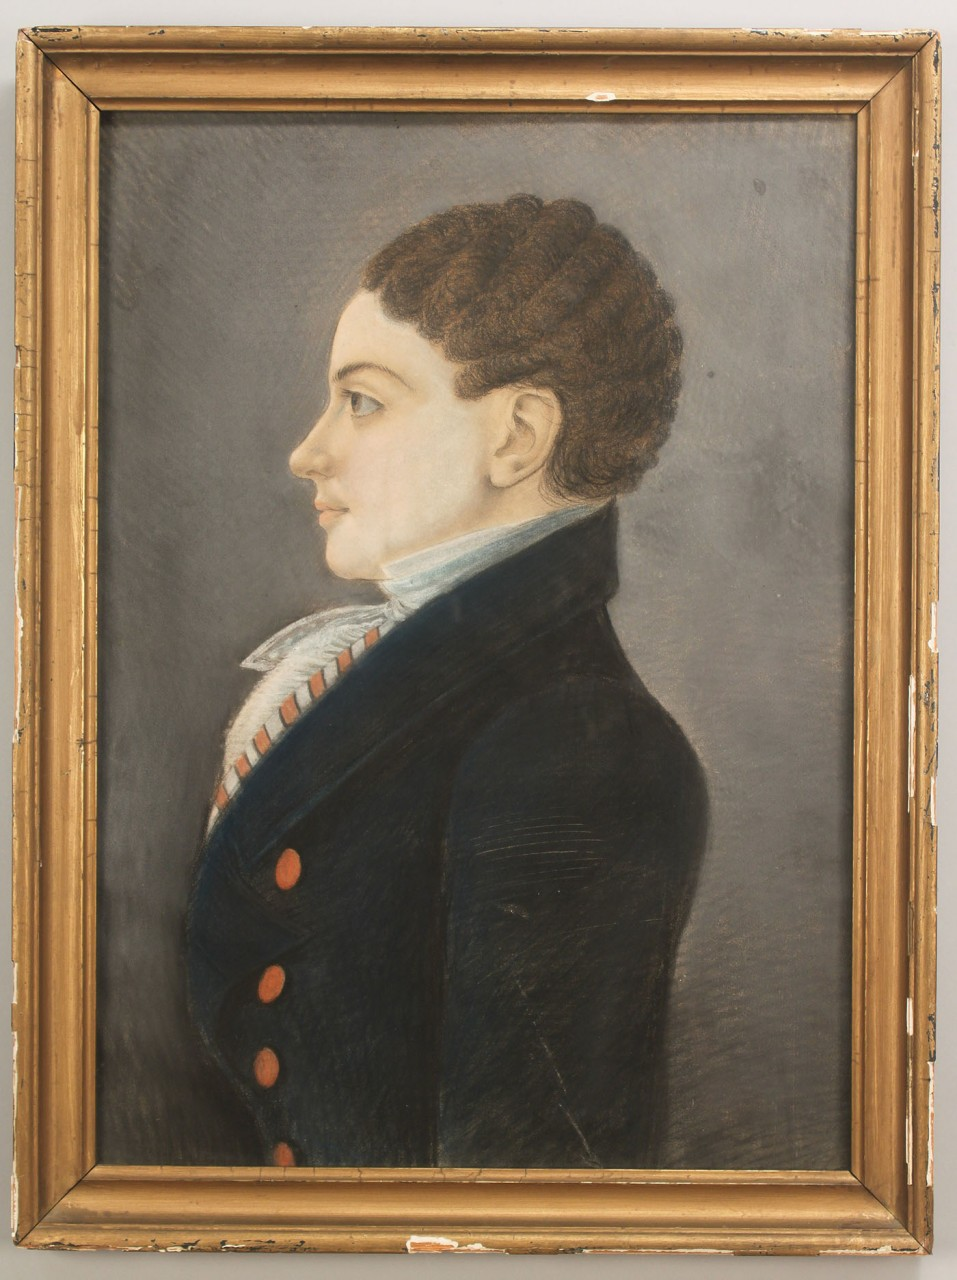 Lot 190: Southern Pair of Portraits, possibly Louisiana